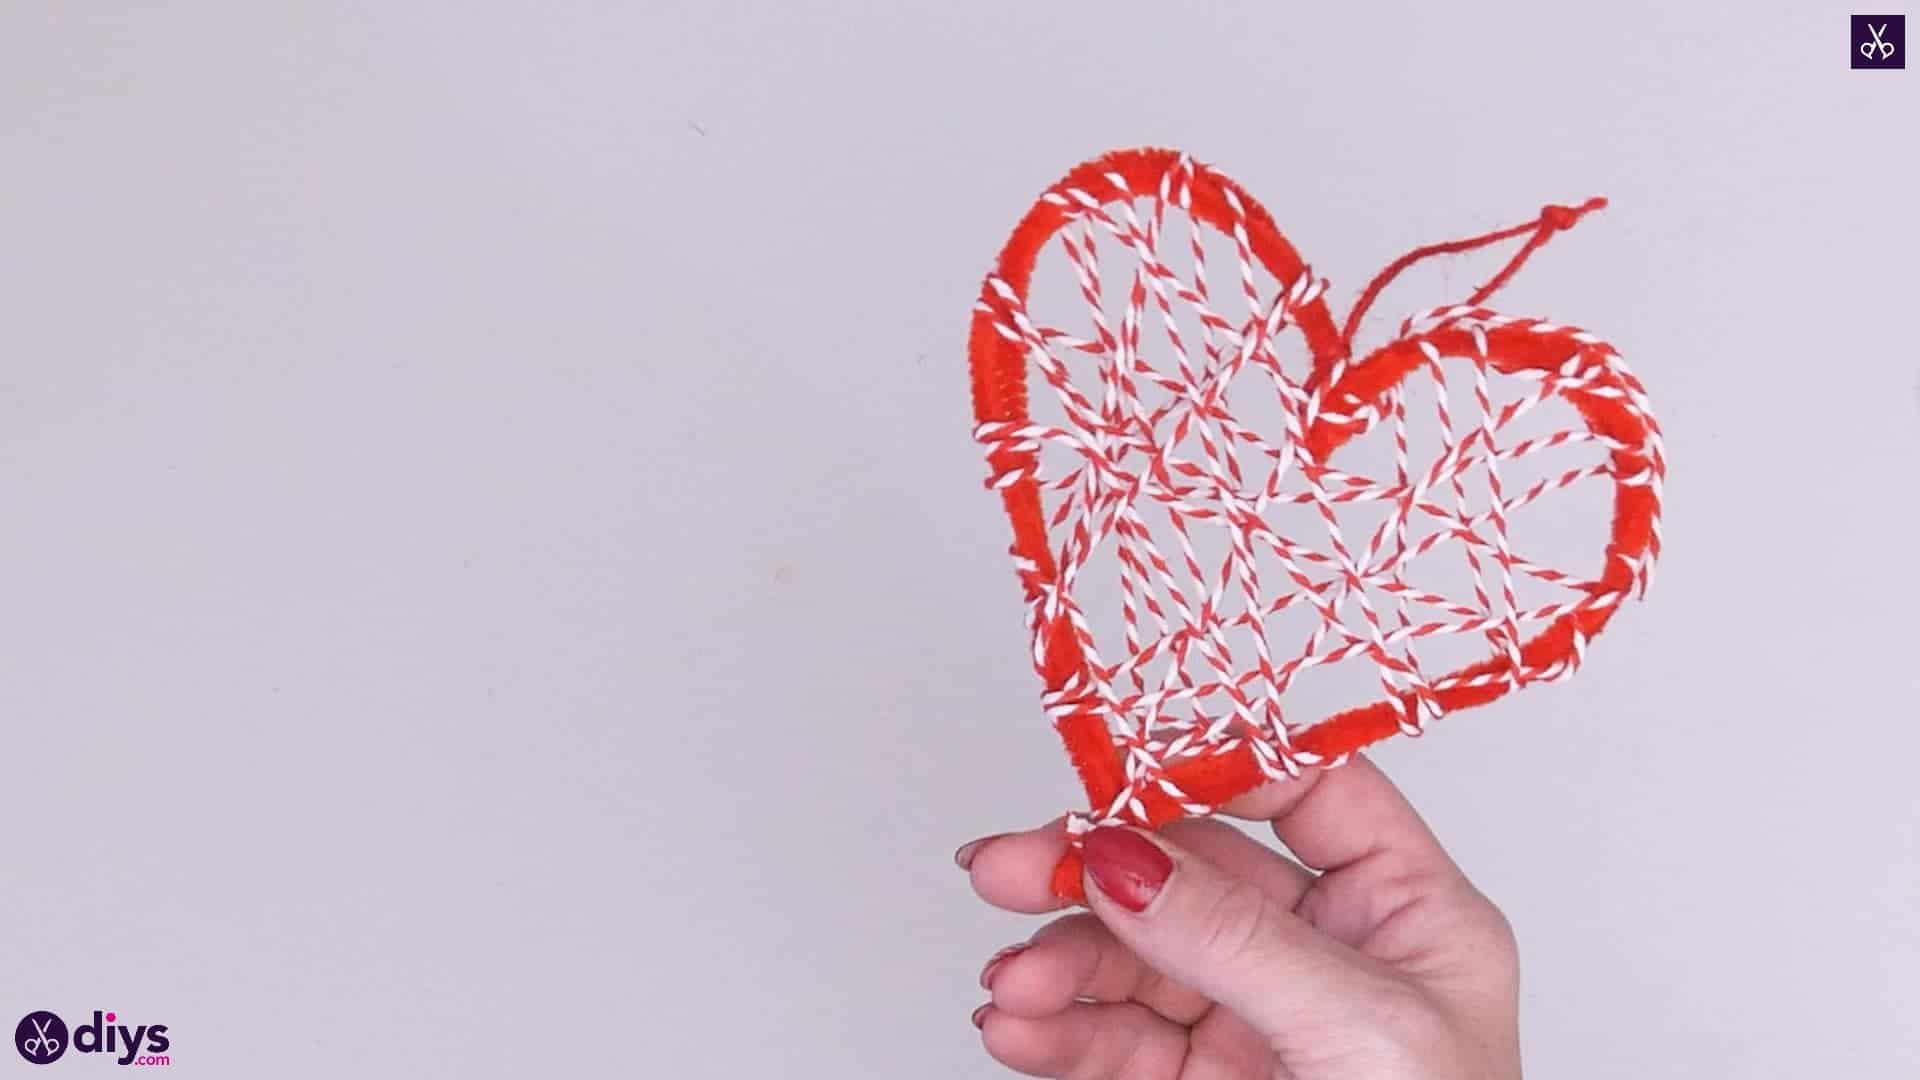 Diy hanging heart wall decor step 4i